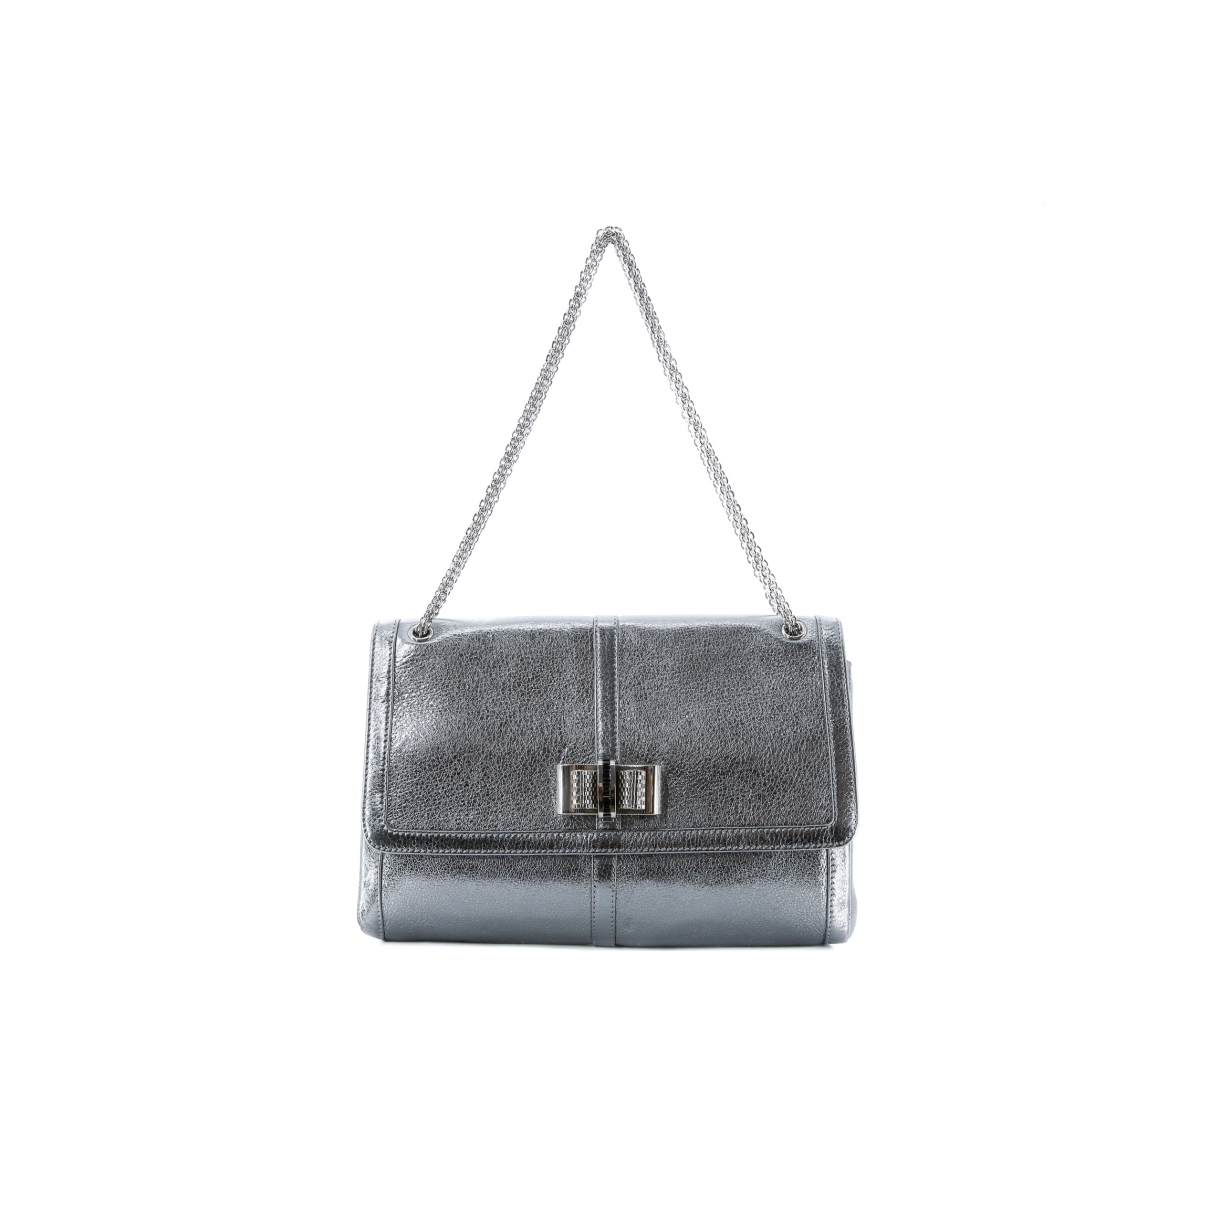 Christian Louboutin Sweet Charity Silver Leather handbag for Women \N